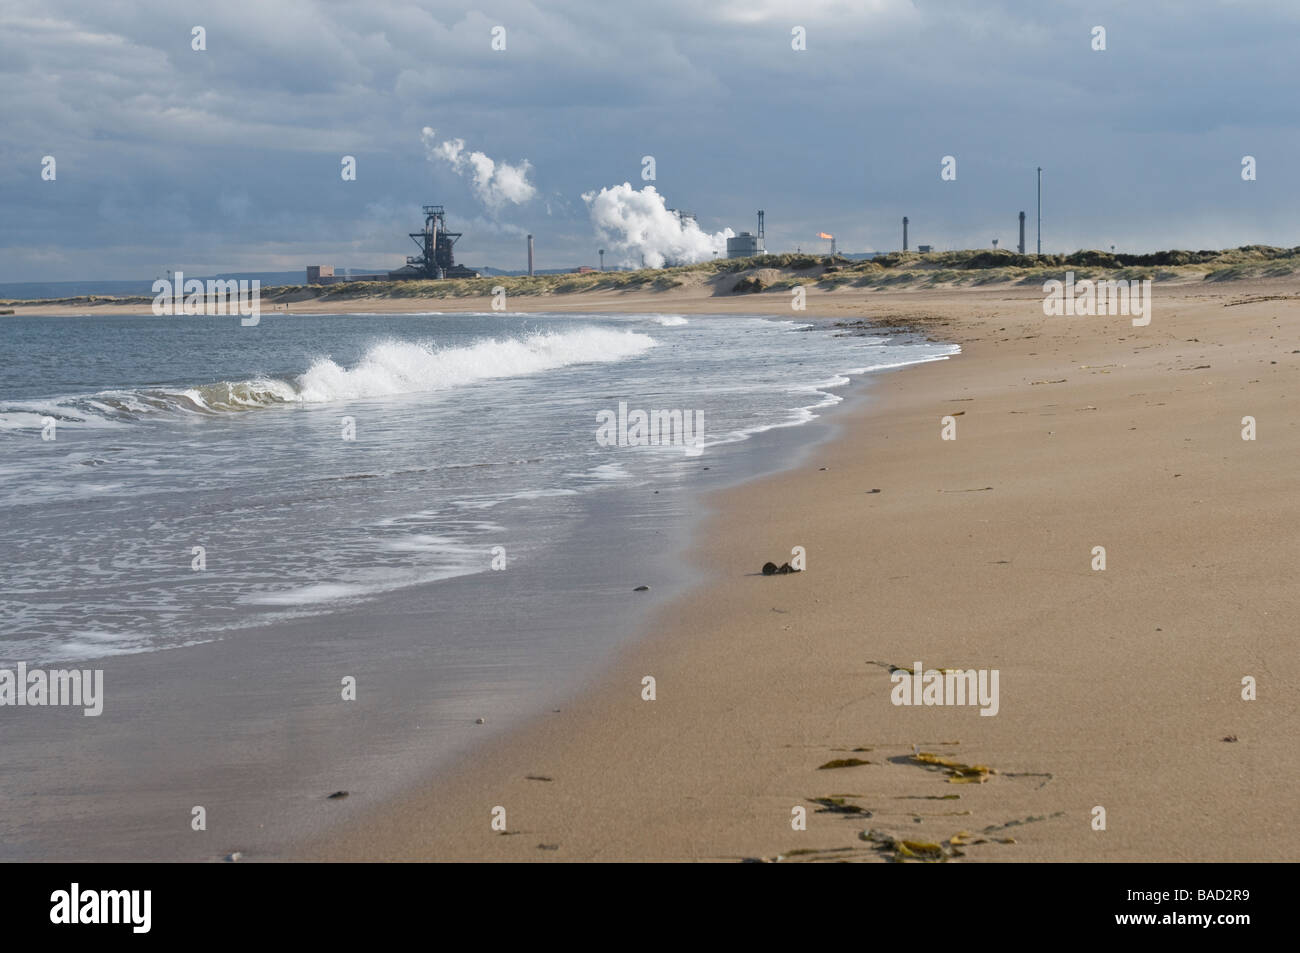 Reclaimed beach at Paddy's Hole, Redcar, Cleveland - Stock Image